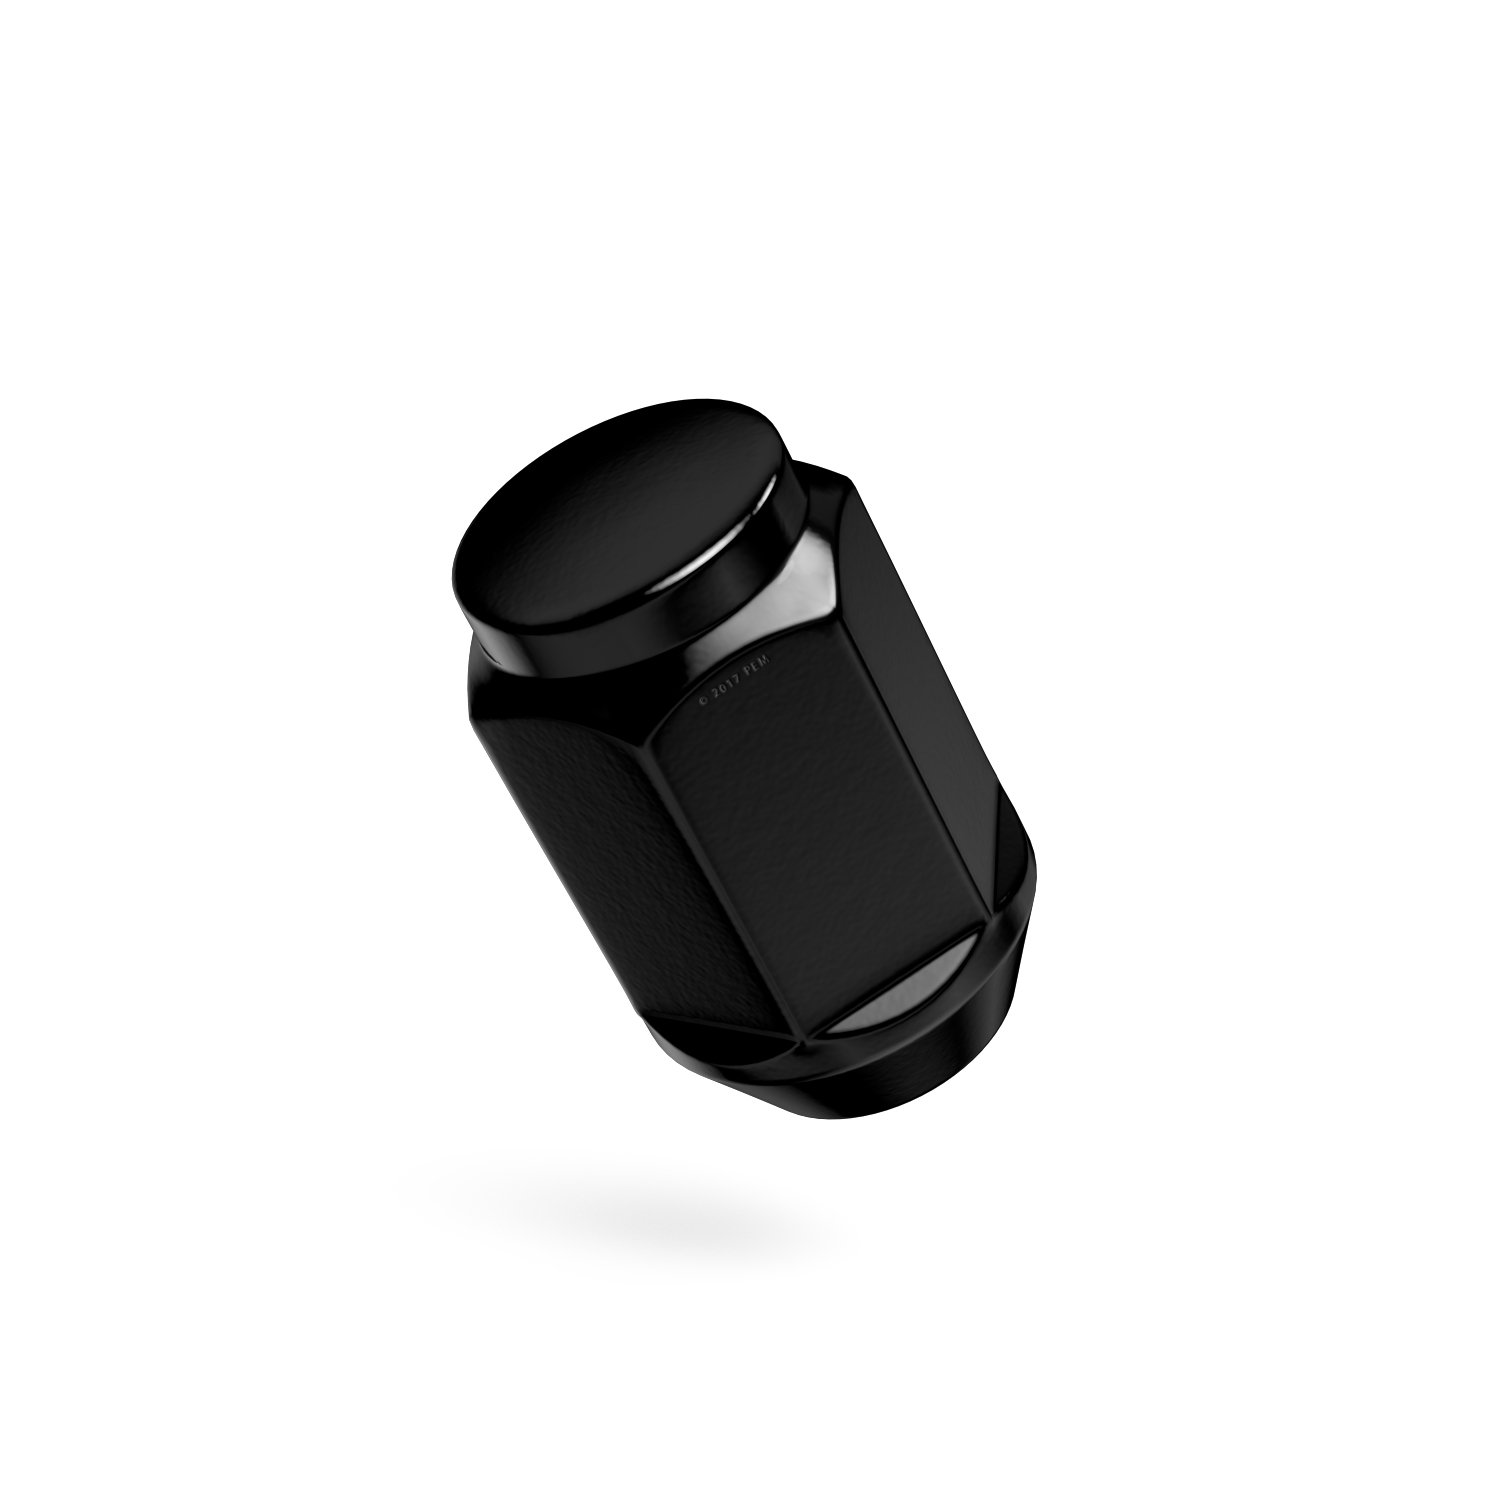 Installs with 19mm or 3//4 Hex Socket Precision European Motorwerks 4347520673 24pc Black Bulge Lug Nuts 7//16-20 Thread Size Conical Cone Taper Acorn Seat Closed End 1.4 Length